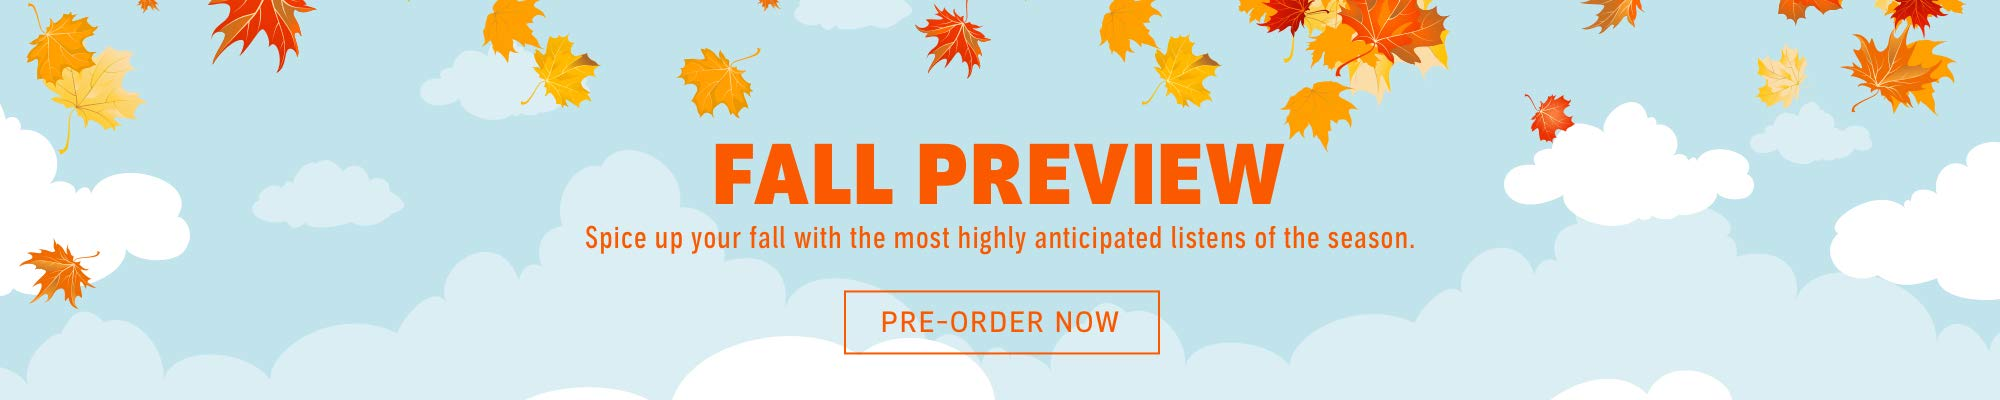 2019 Fall Preview. Spice up your fall with the top 100 listens of the season.